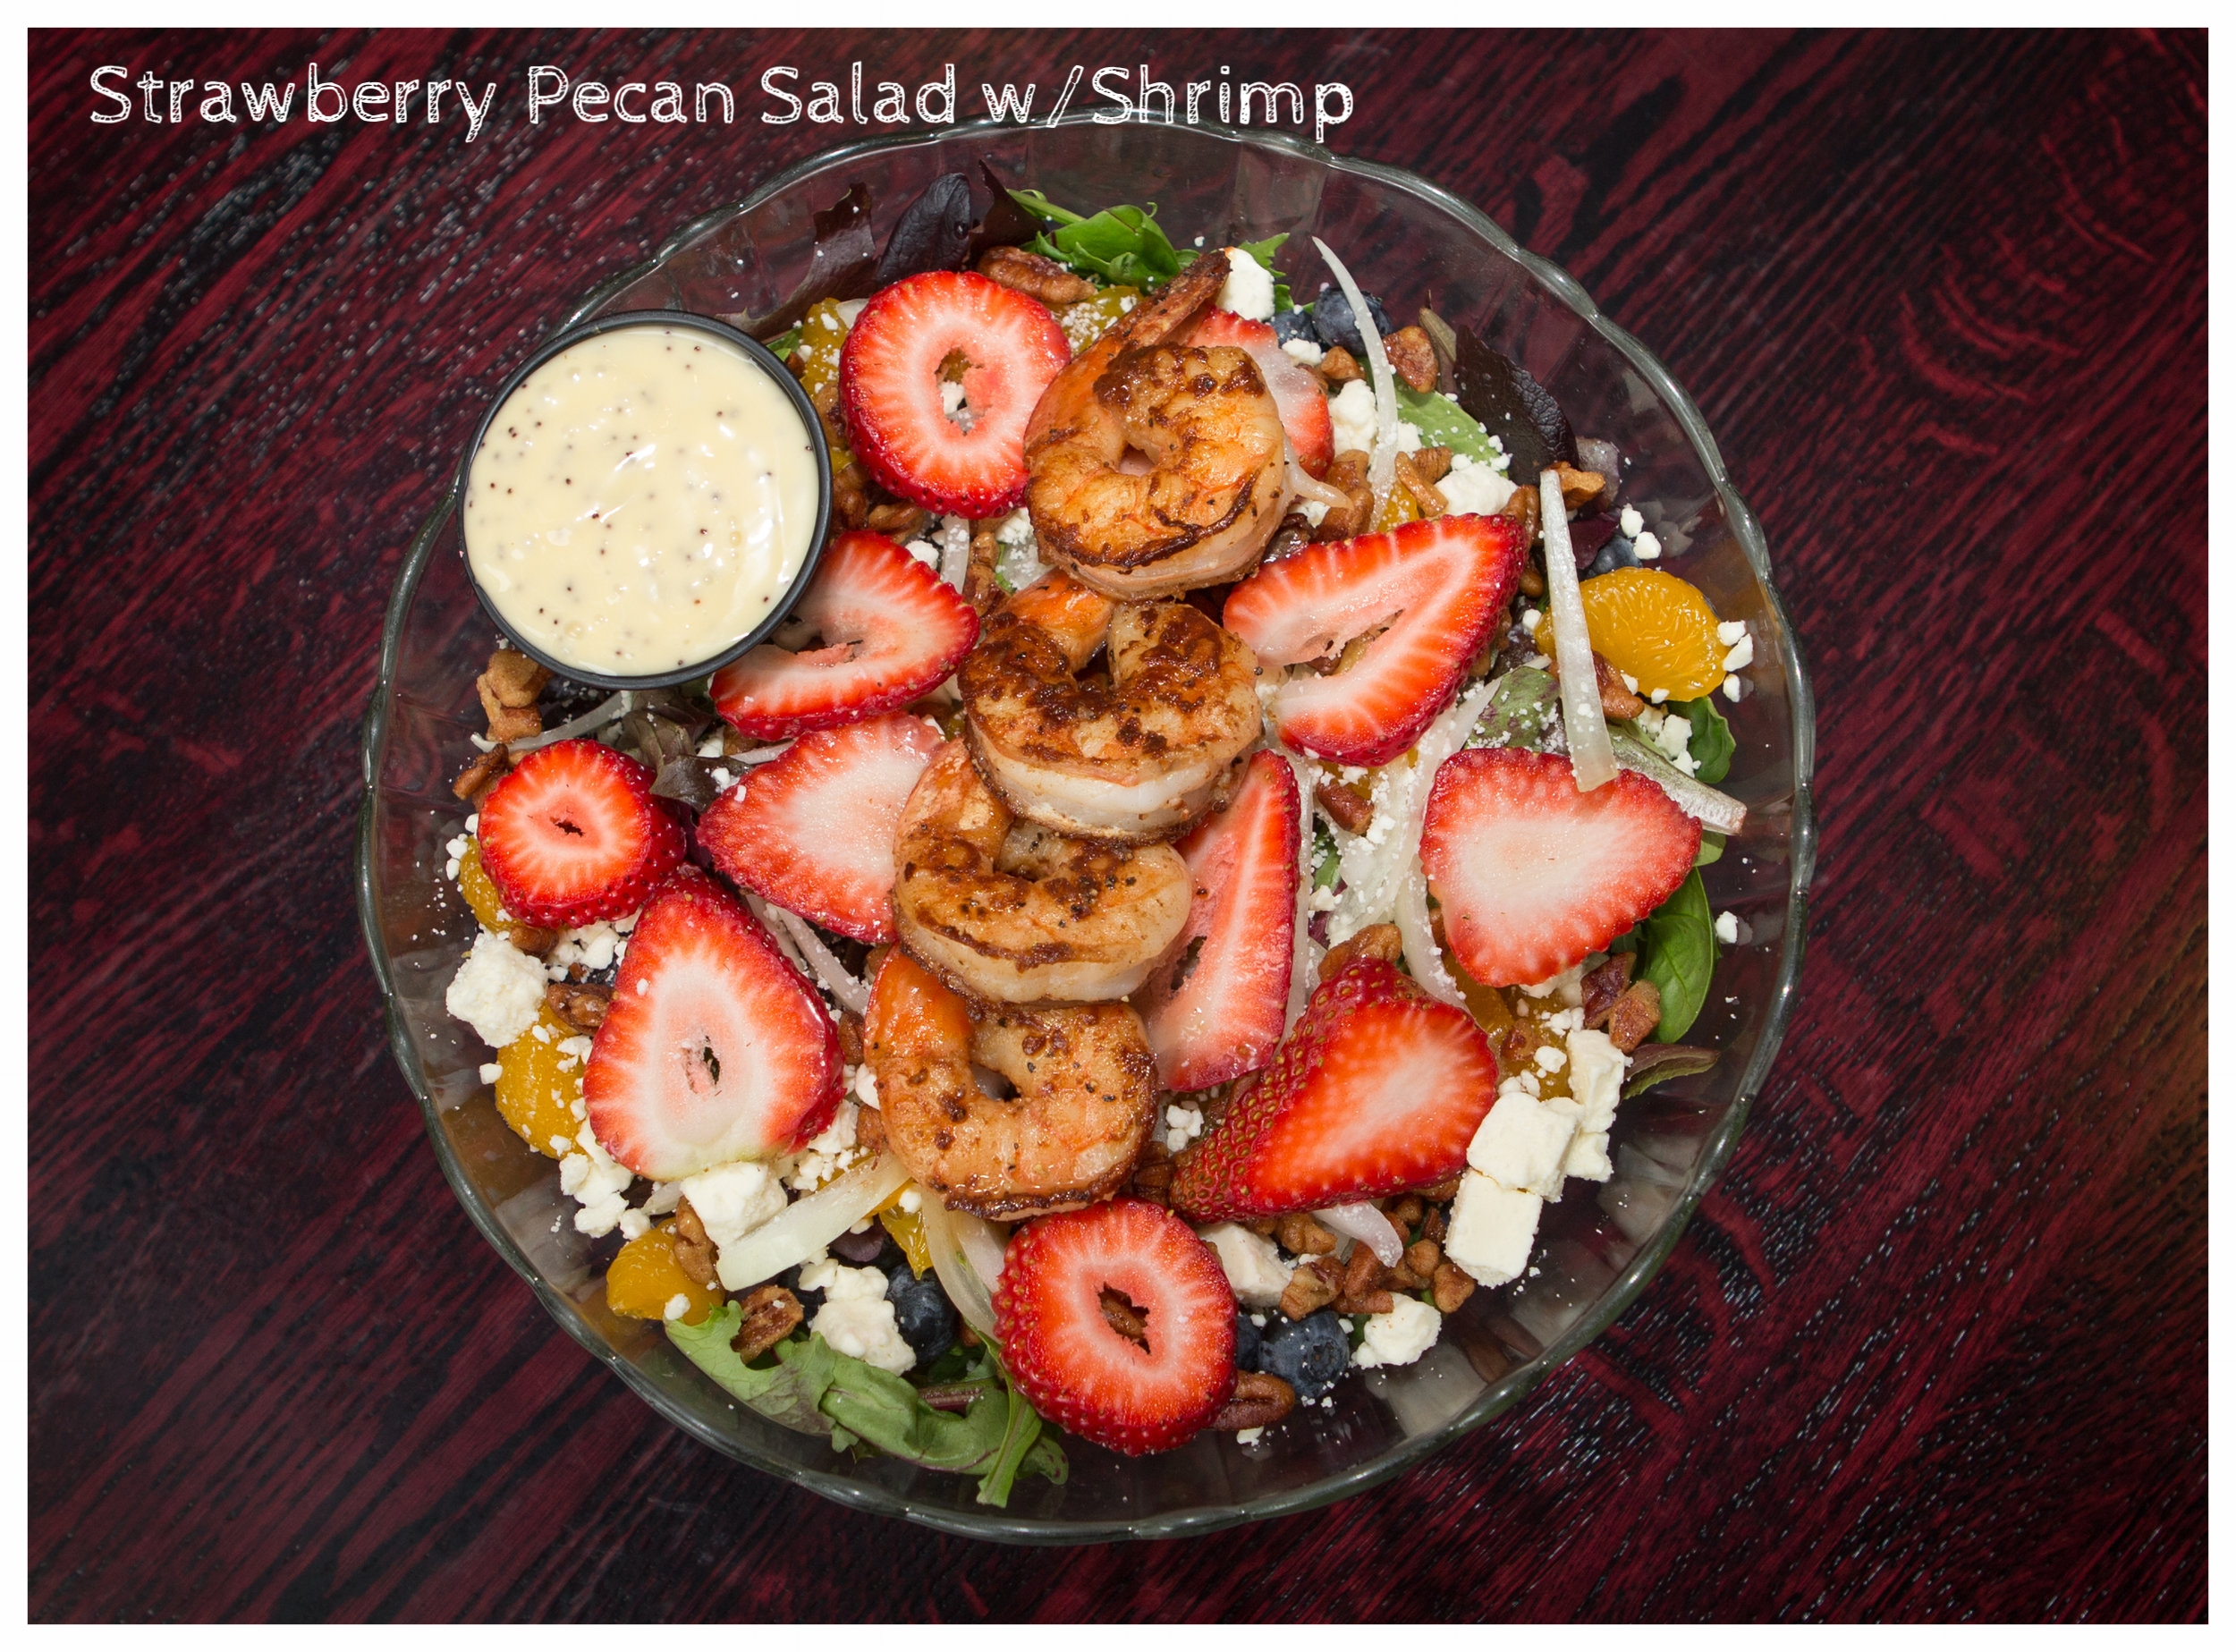 Strawberry Pecan Salad w Shrimp (top).jpg